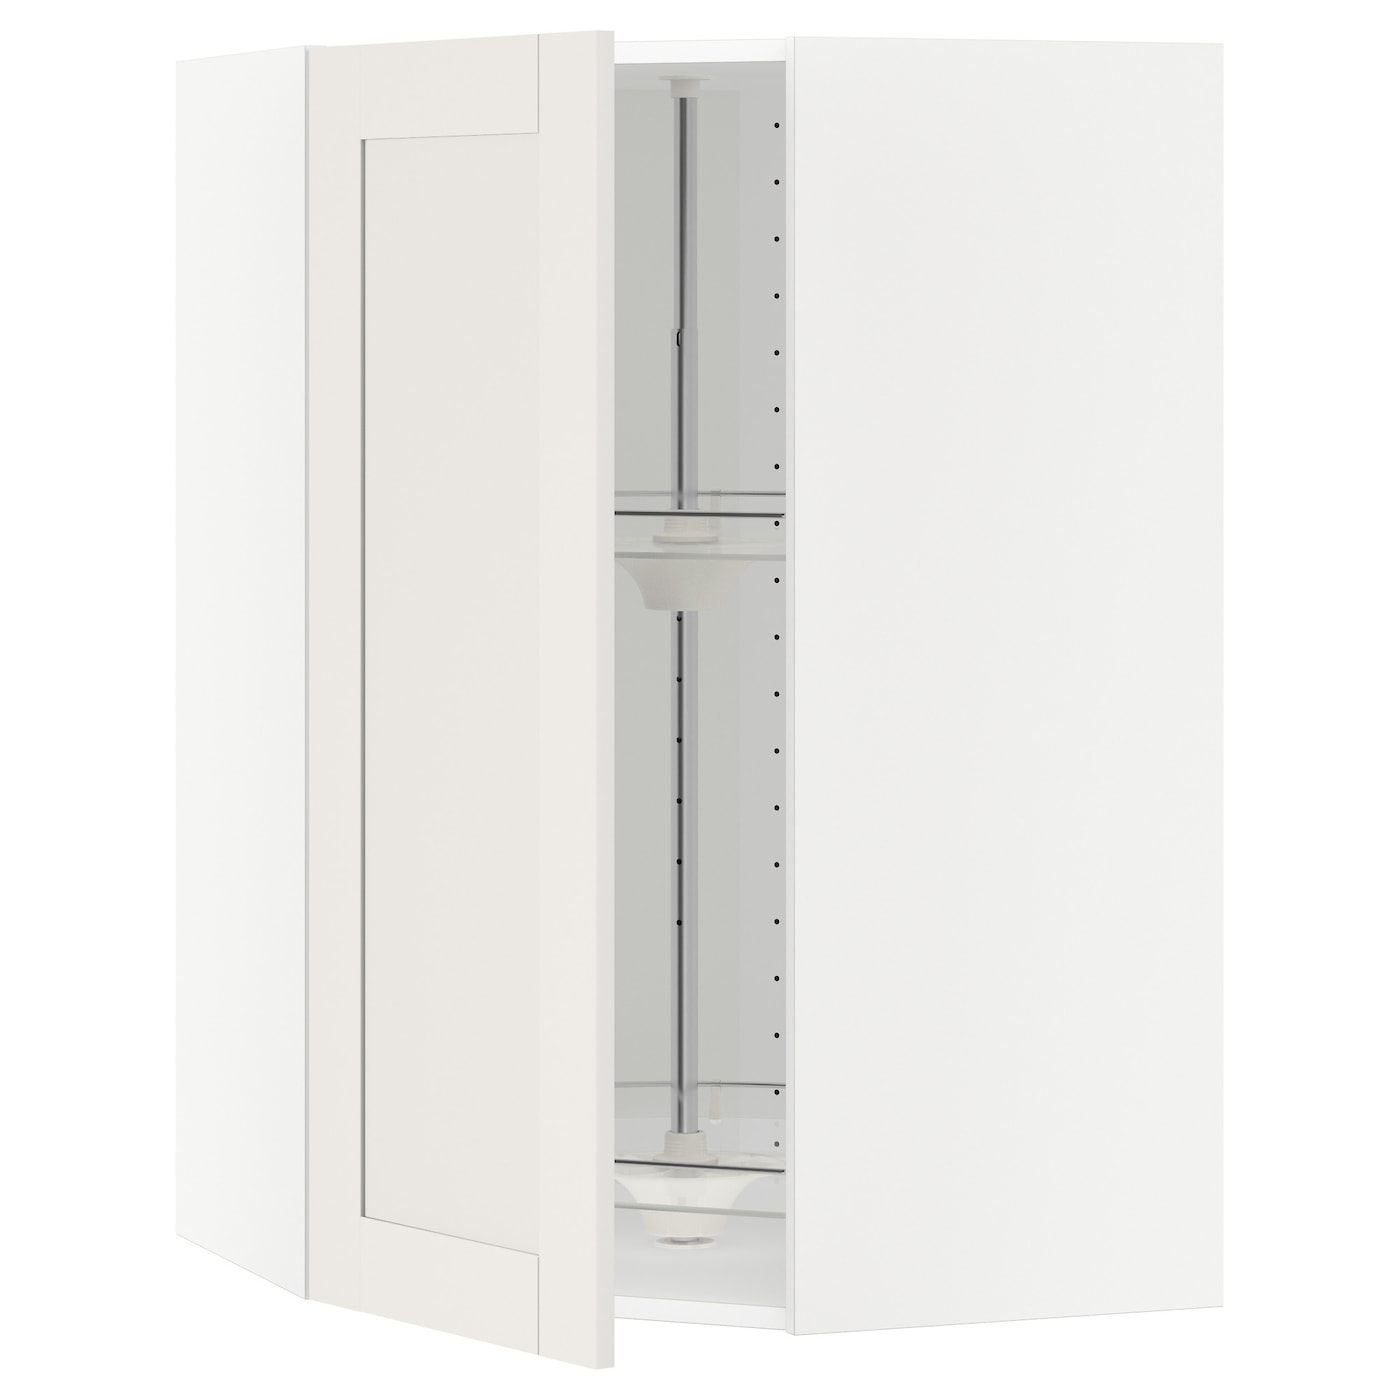 IKEA METOD corner wall cabinet with carousel Sturdy frame construction, 18 mm thick.